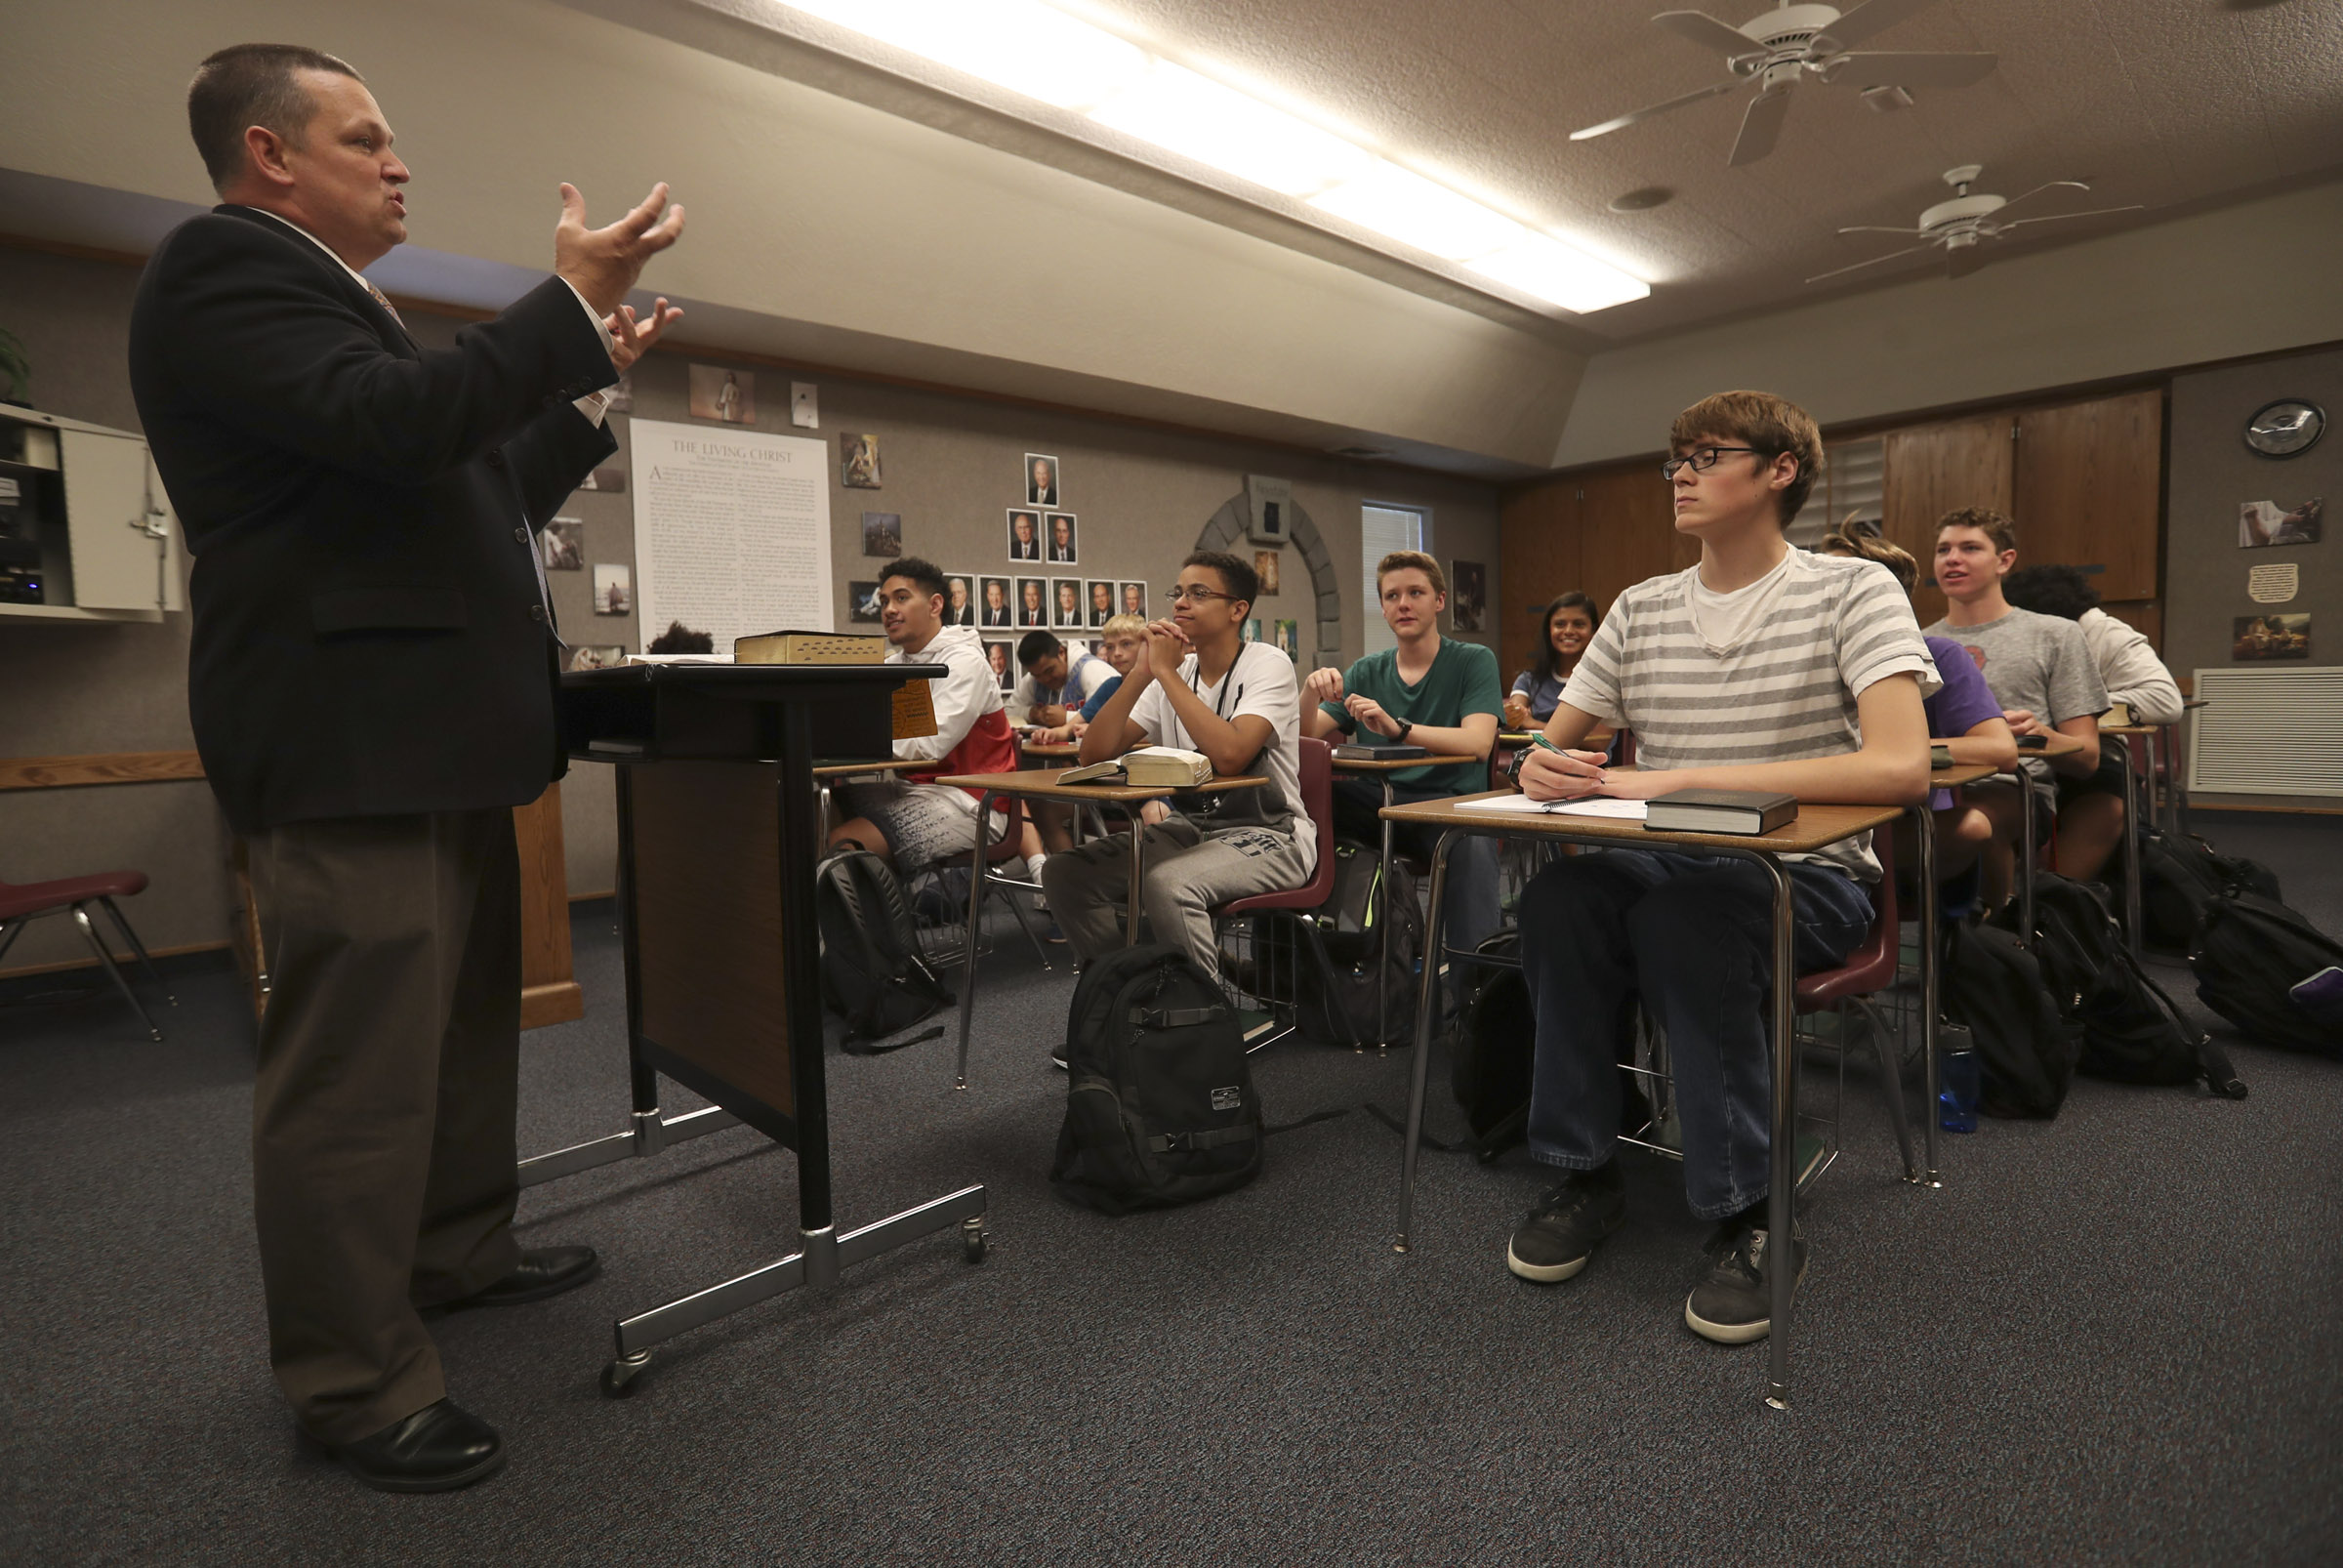 West High's Seminary principal, Trent Smith, talks with his students during an LDS seminary class at West High School in Salt Lake City on Monday, Sept. 17, 2018.